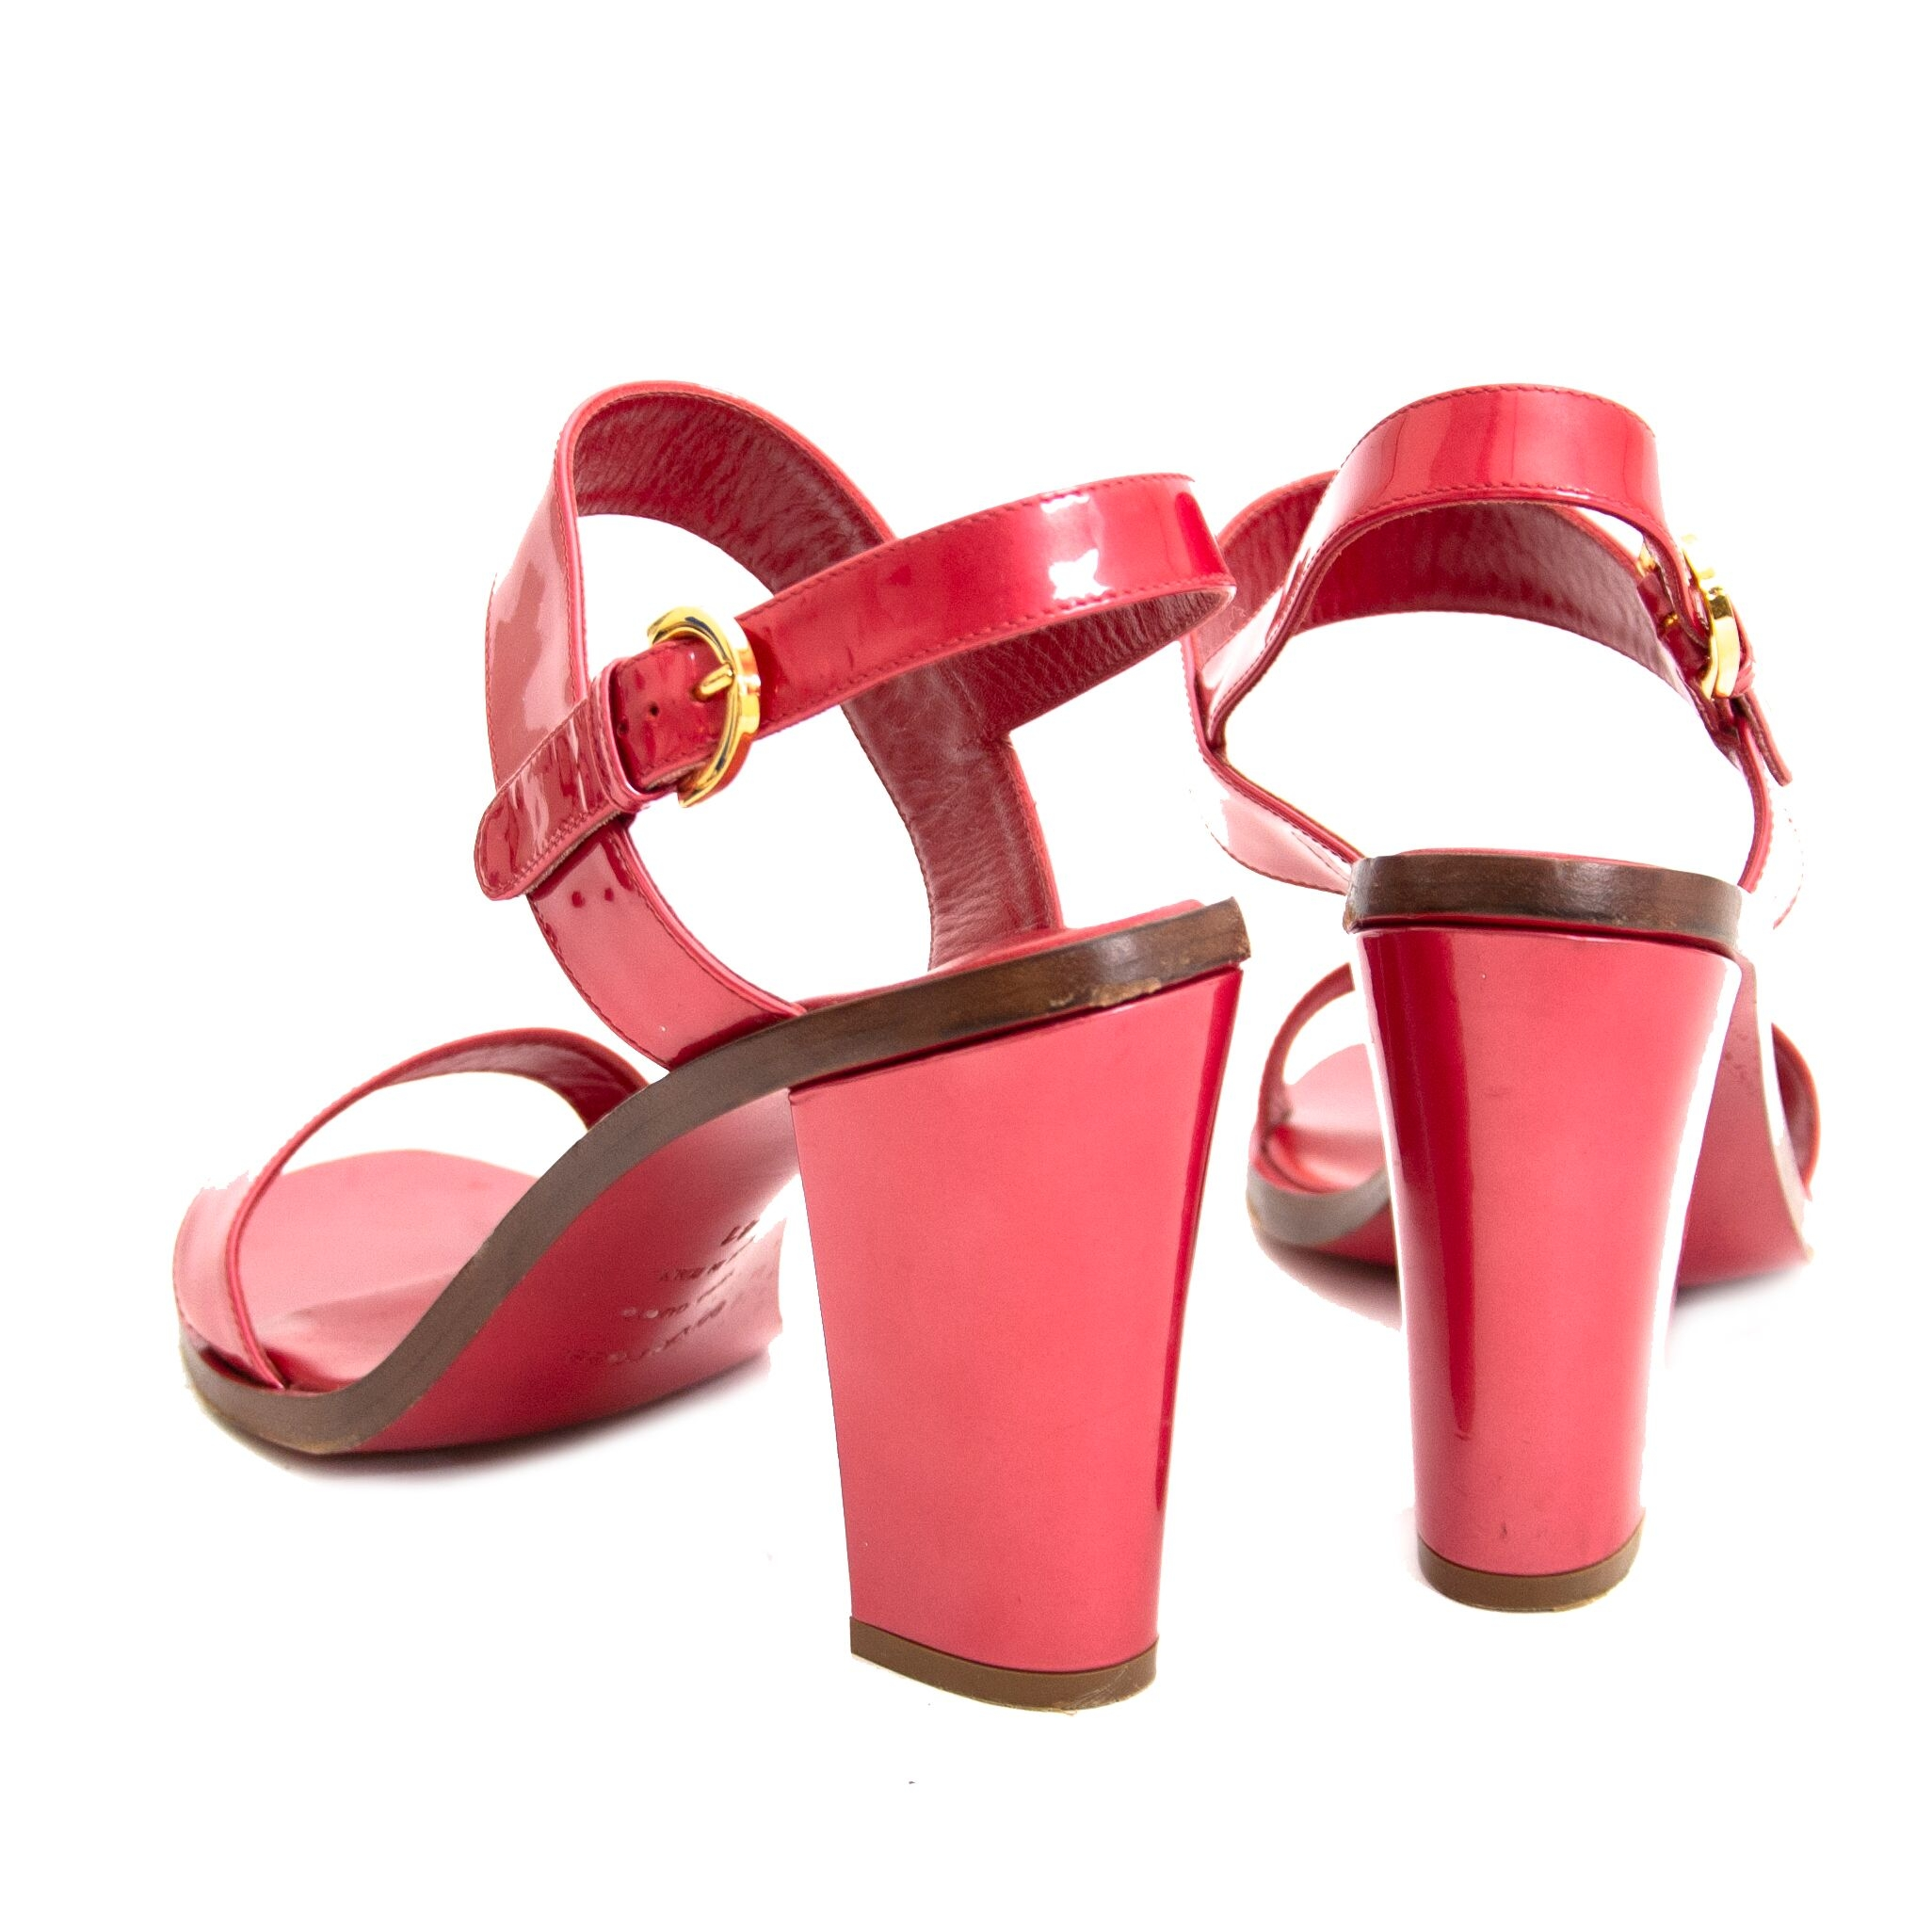 7b18625abb5 ... Size 41 Buy authentic second hand Sergio Rossi Red Sandals with heel at  online webshop LabelLOV